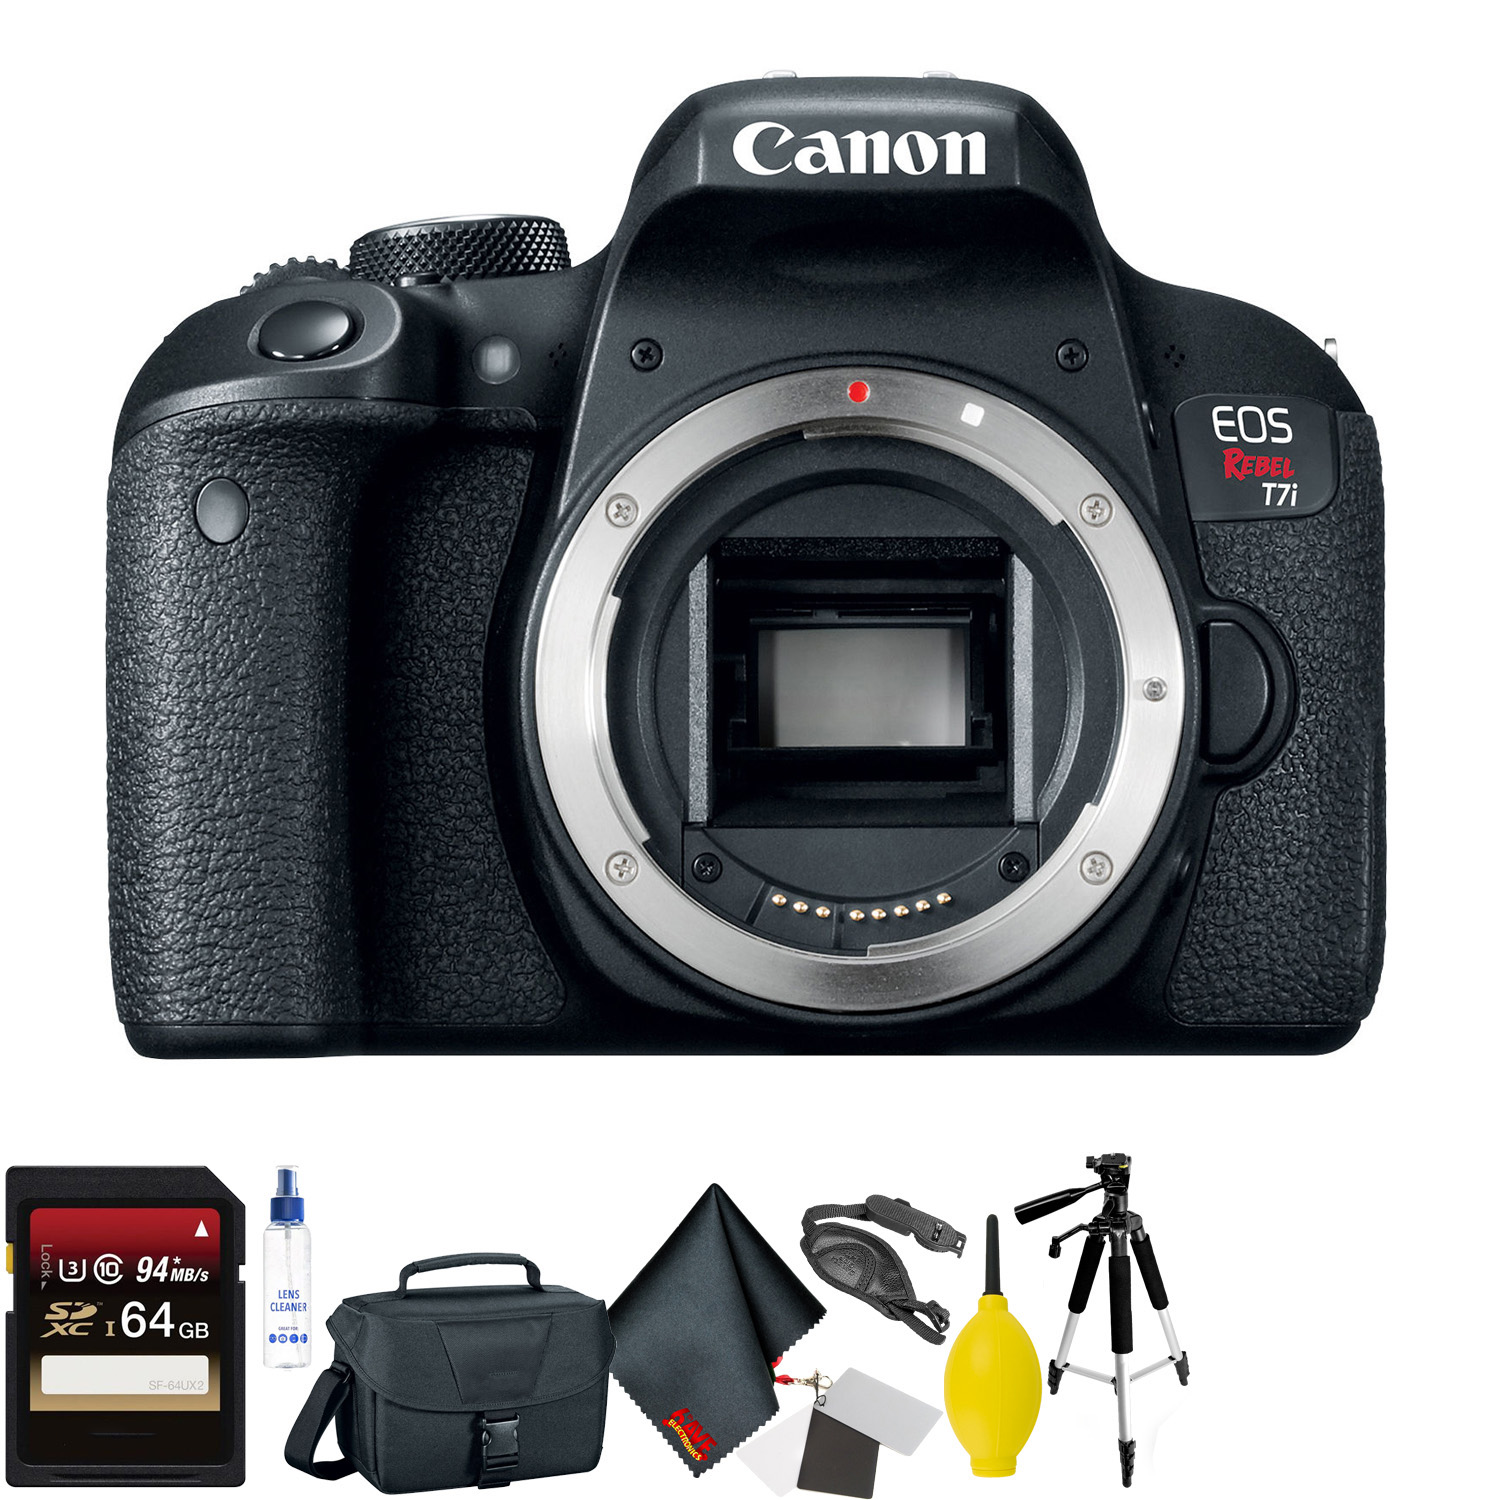 Canon EOS Rebel T7i DSLR Camera Body Only + 64GB Memory Card